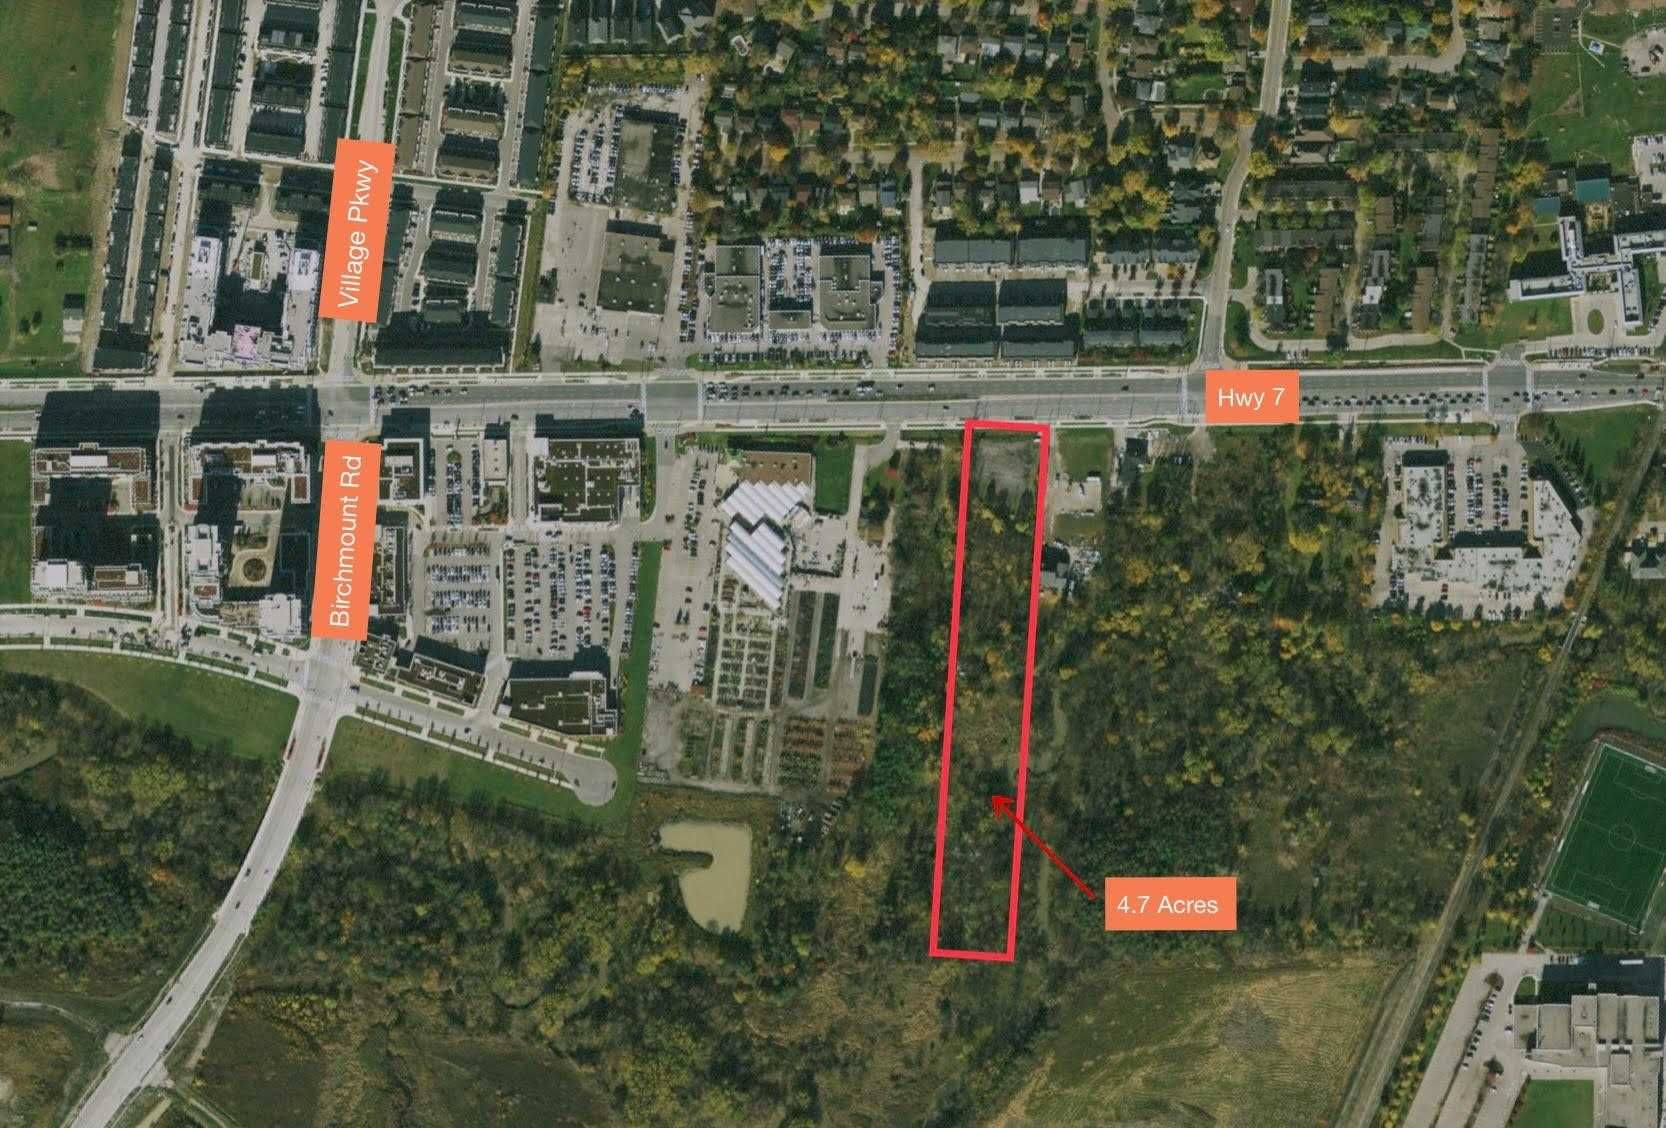 Main Photo: 4137 E Highway 7 in Markham: Unionville Property for sale : MLS®# N5286961